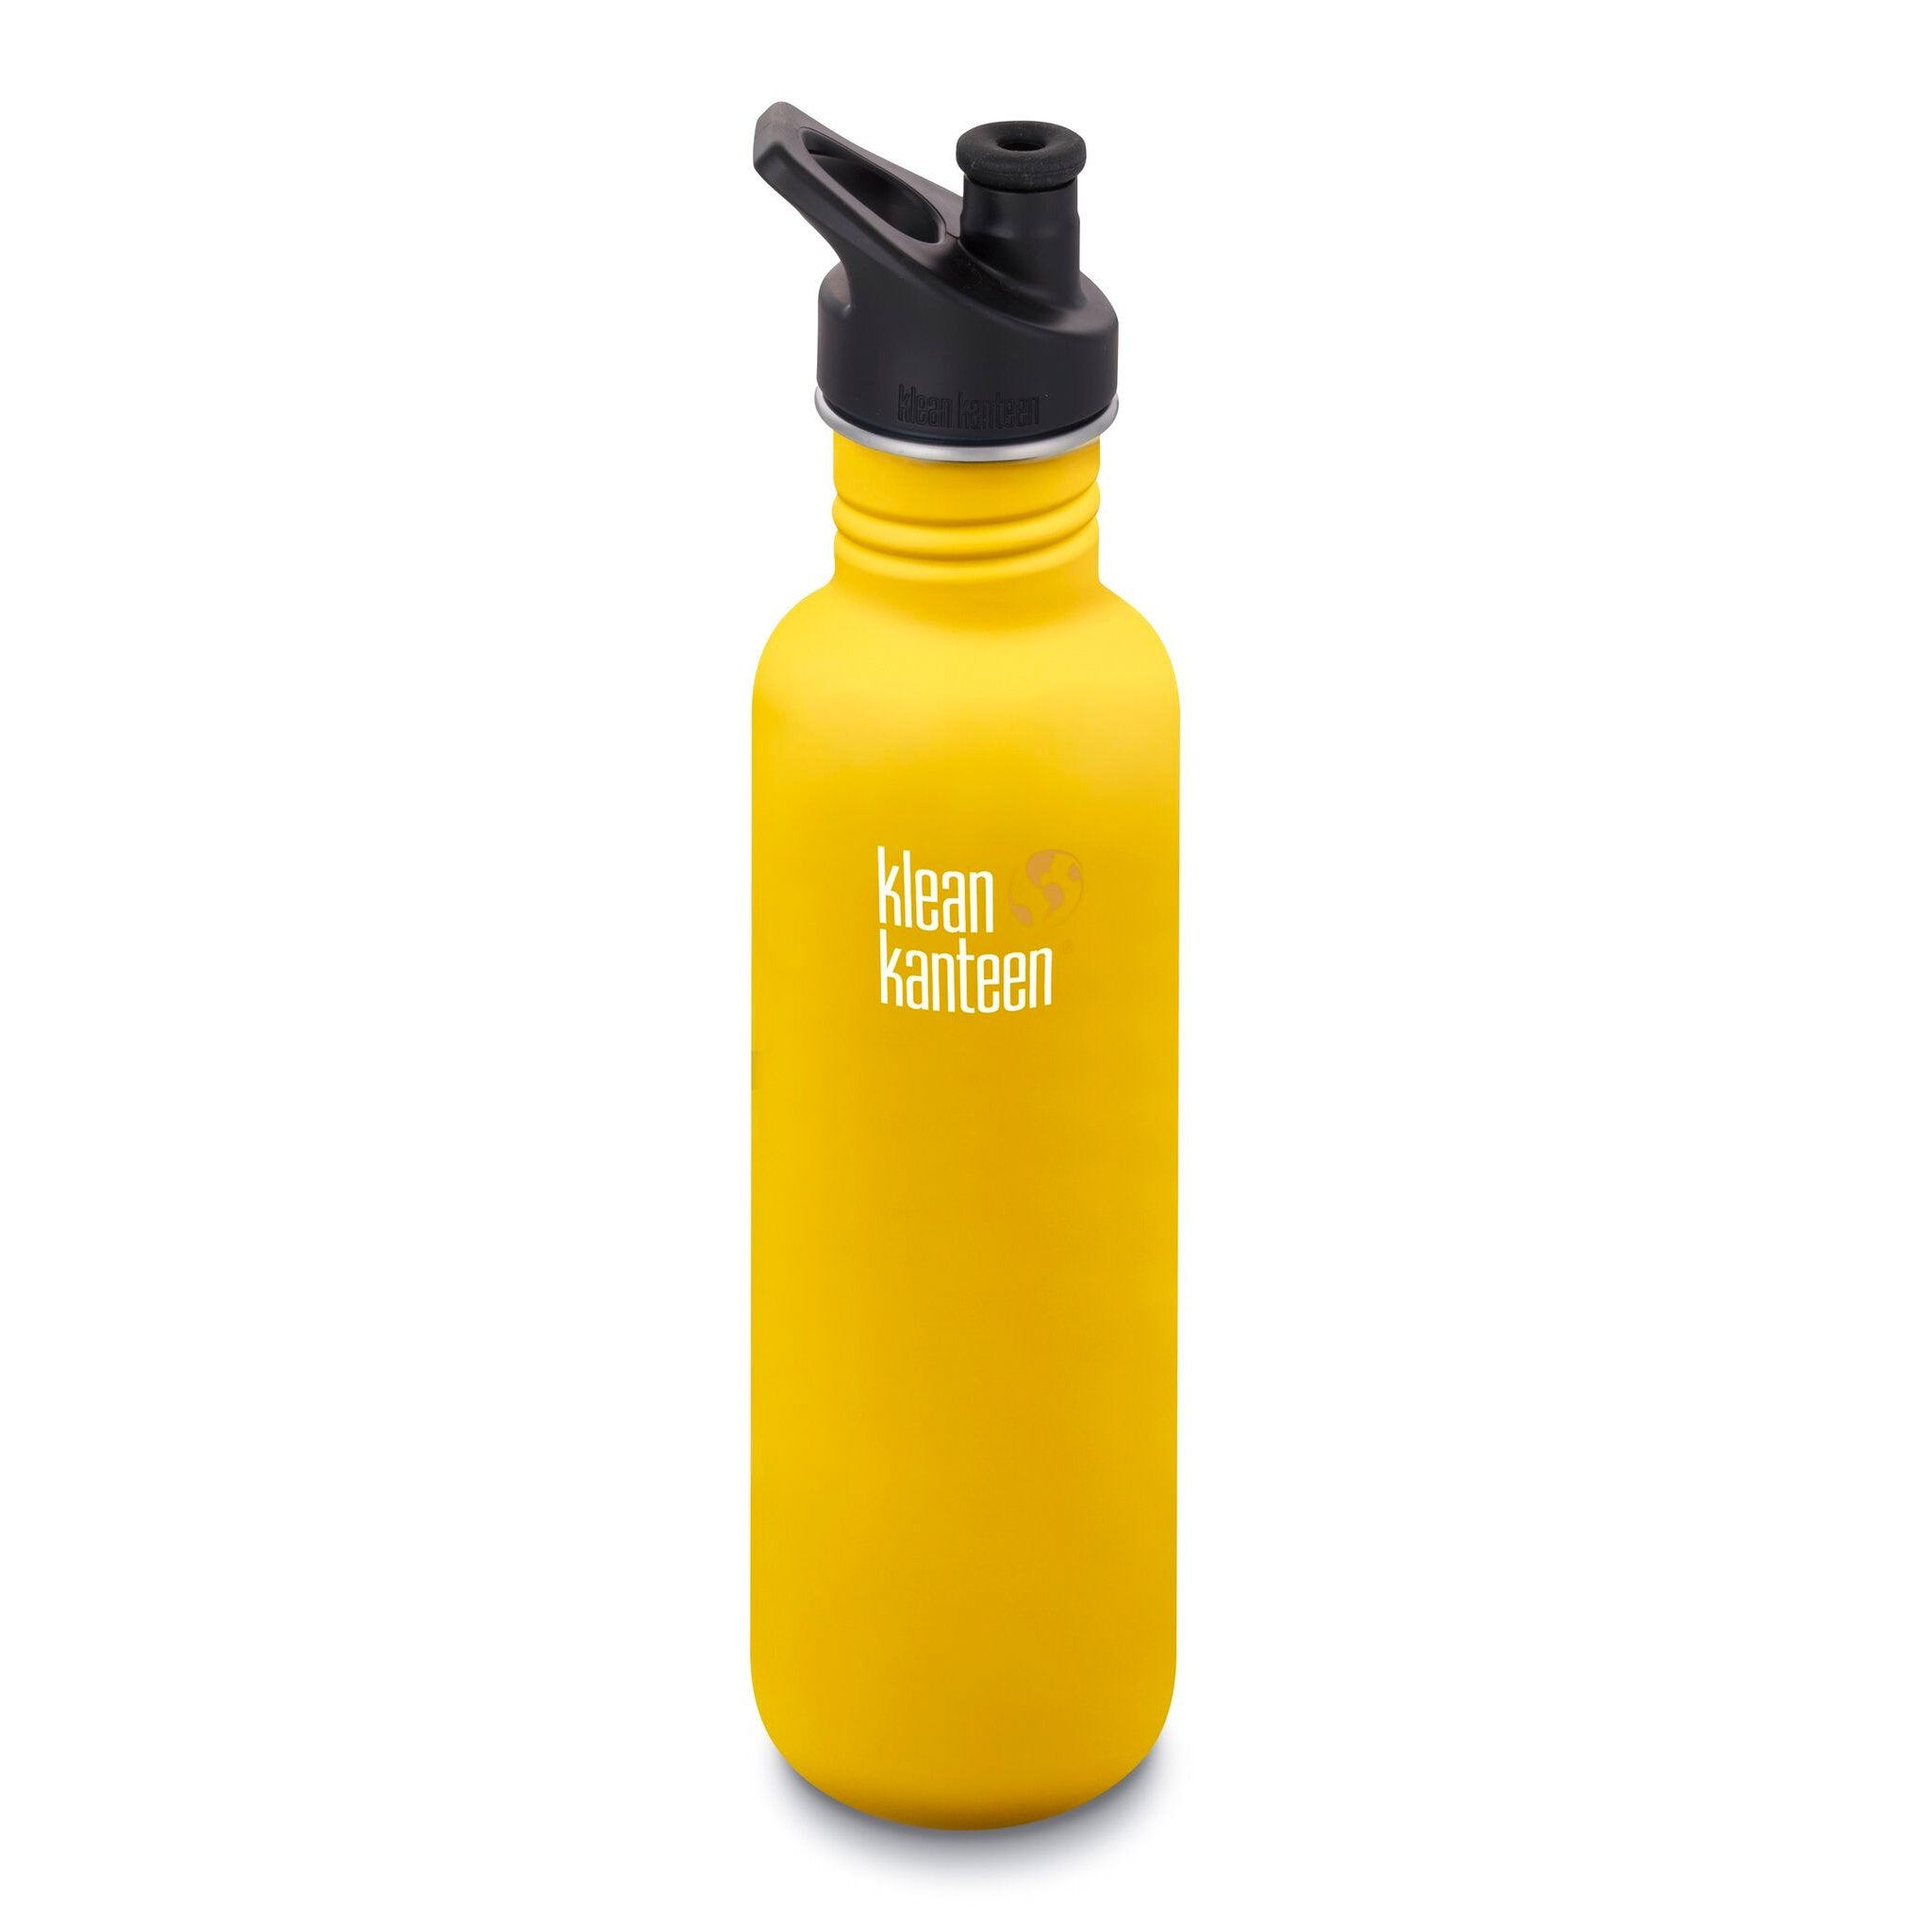 Klean Kanteen Stainless Steel Classic Water Bottle Klean Kanteen Water Bottles 800ml 27oz / Lemon Curry at Little Earth Nest Eco Shop